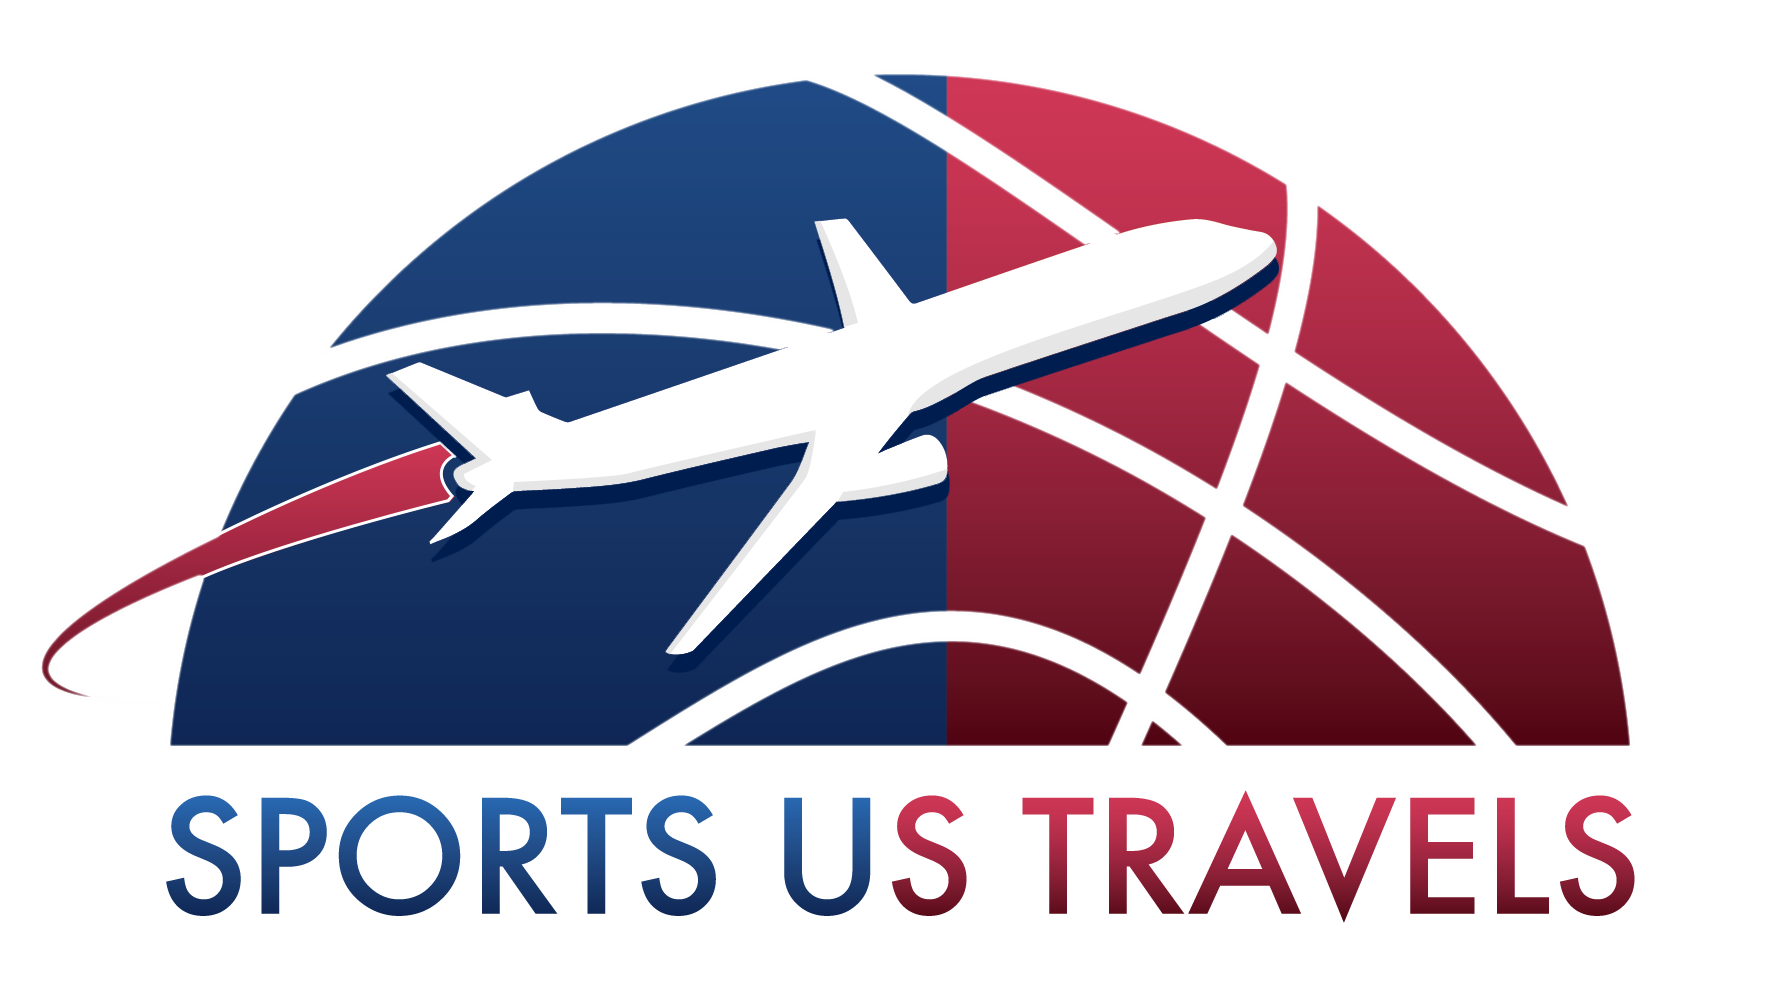 Sports Us Travels